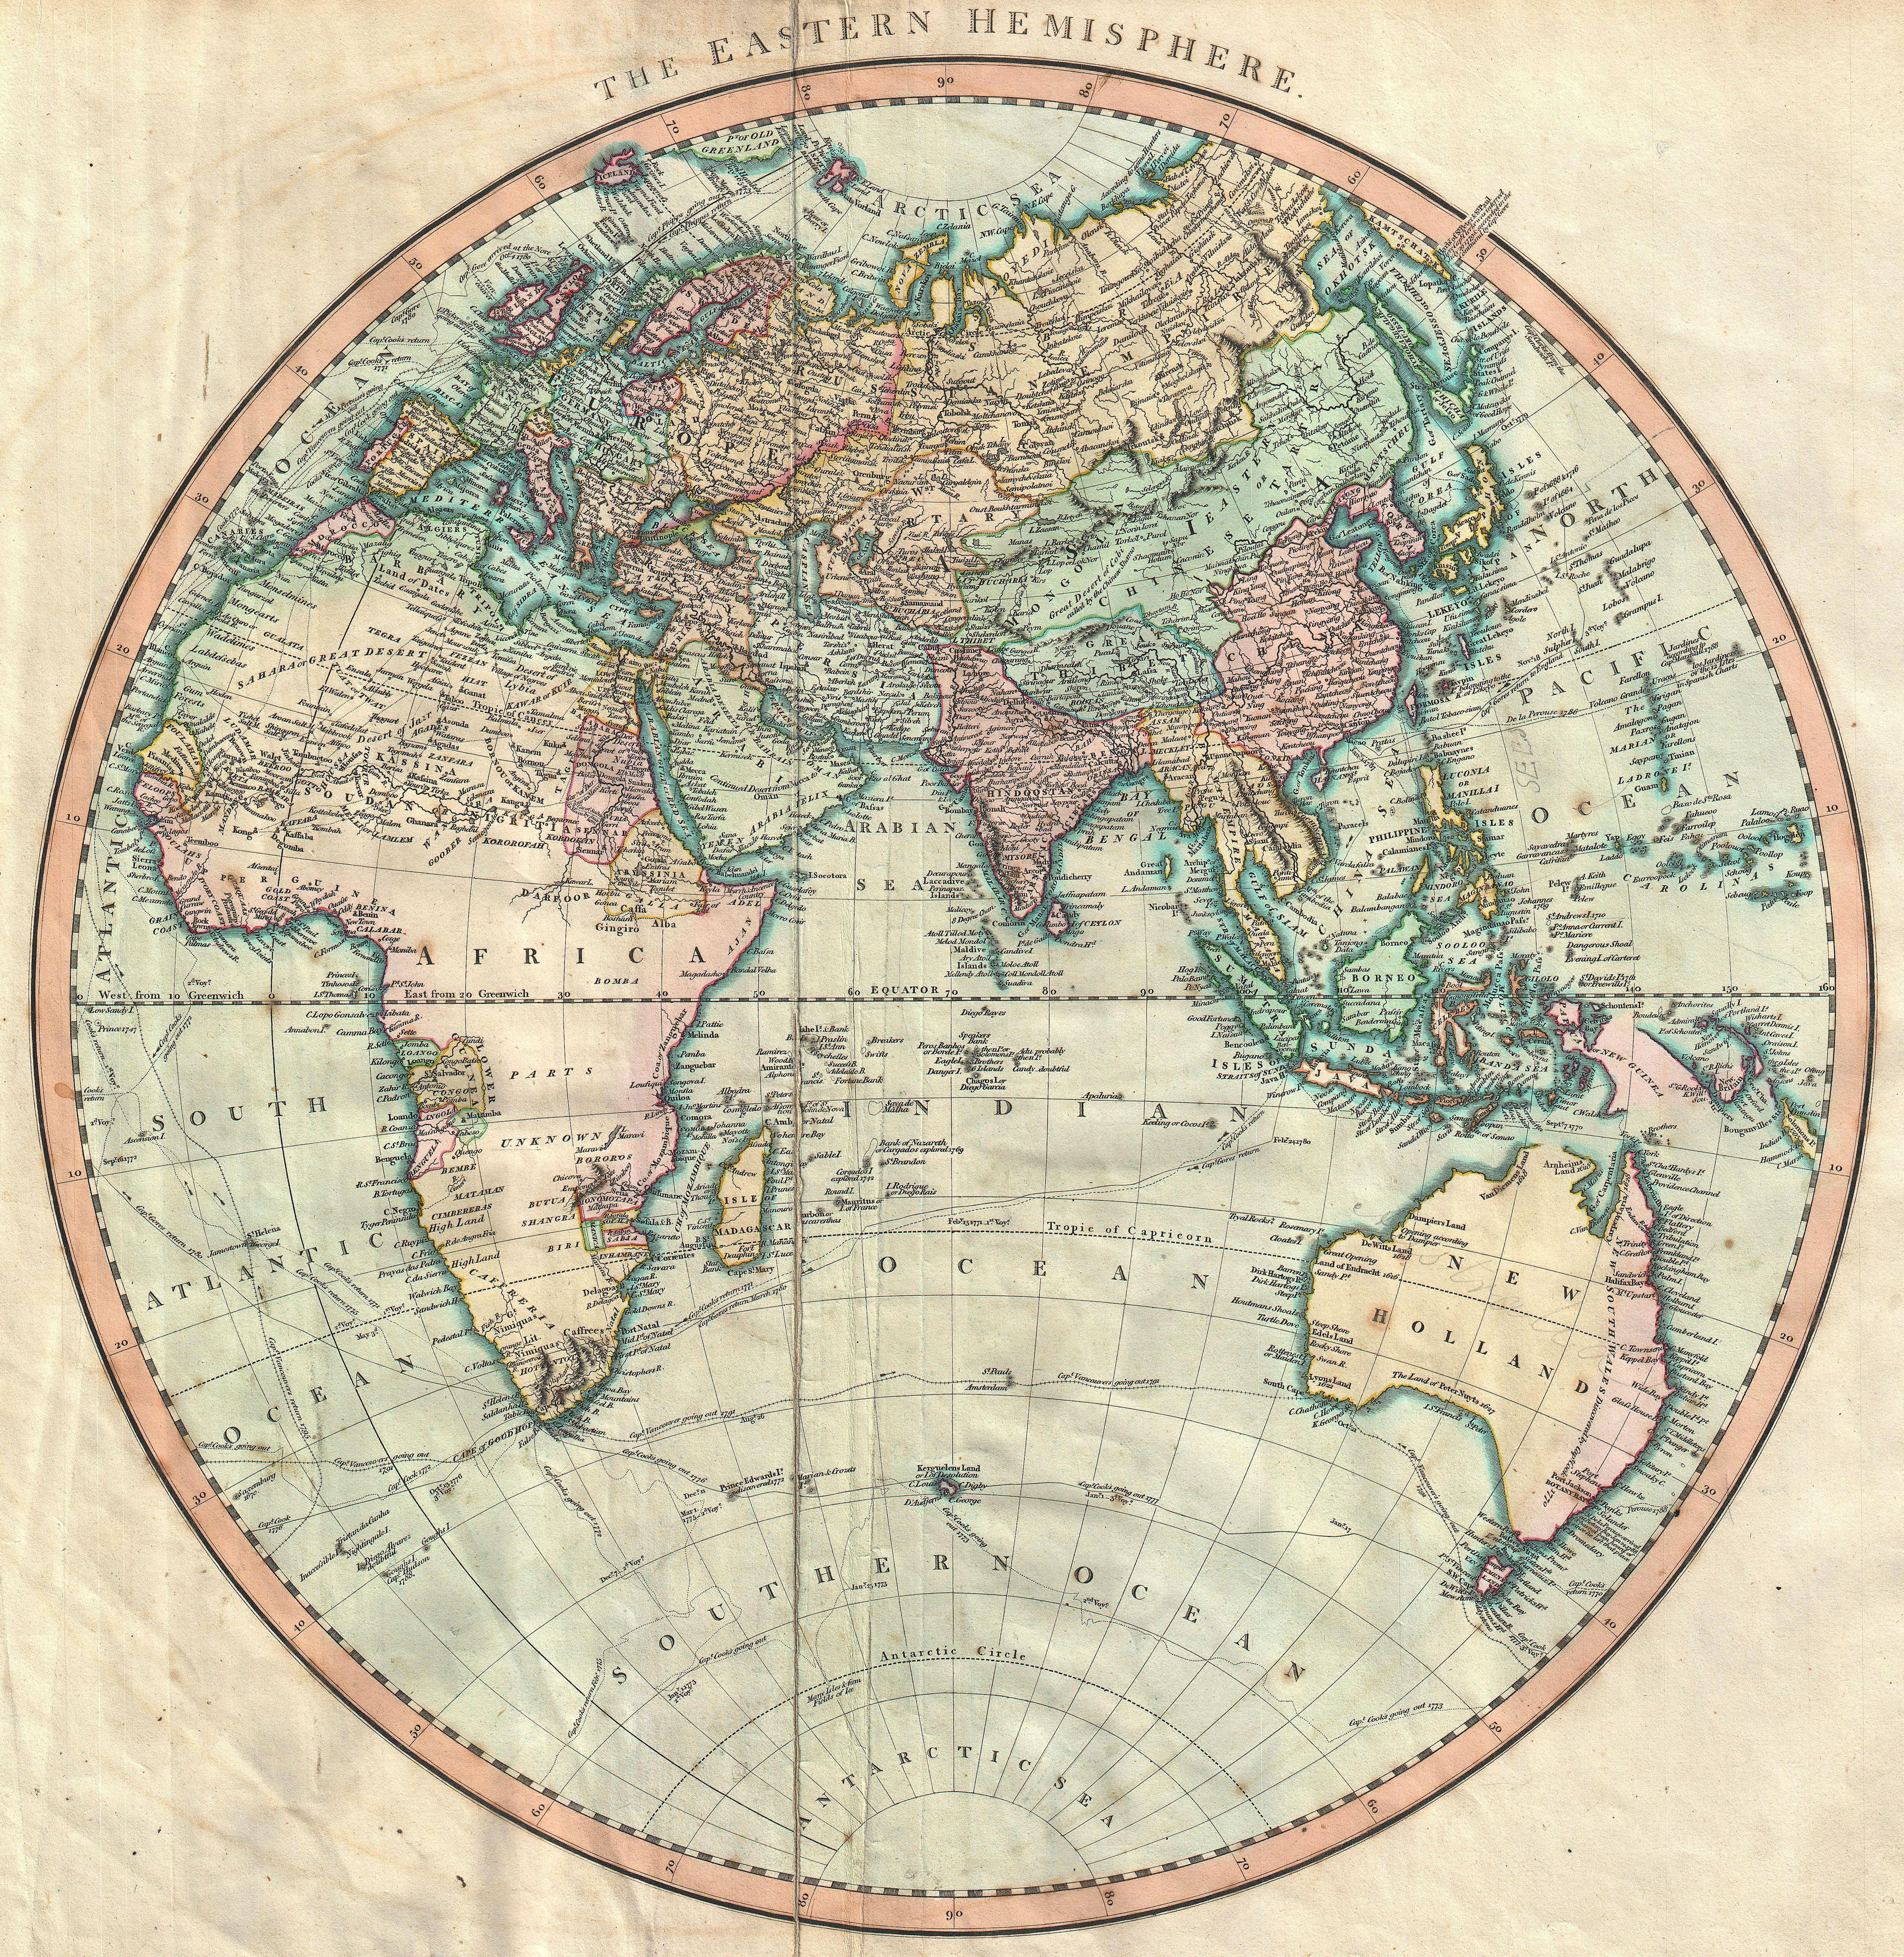 File:1801 Cary Map Of The Eastern Hemisphere ( Asia, Africa, Australia )